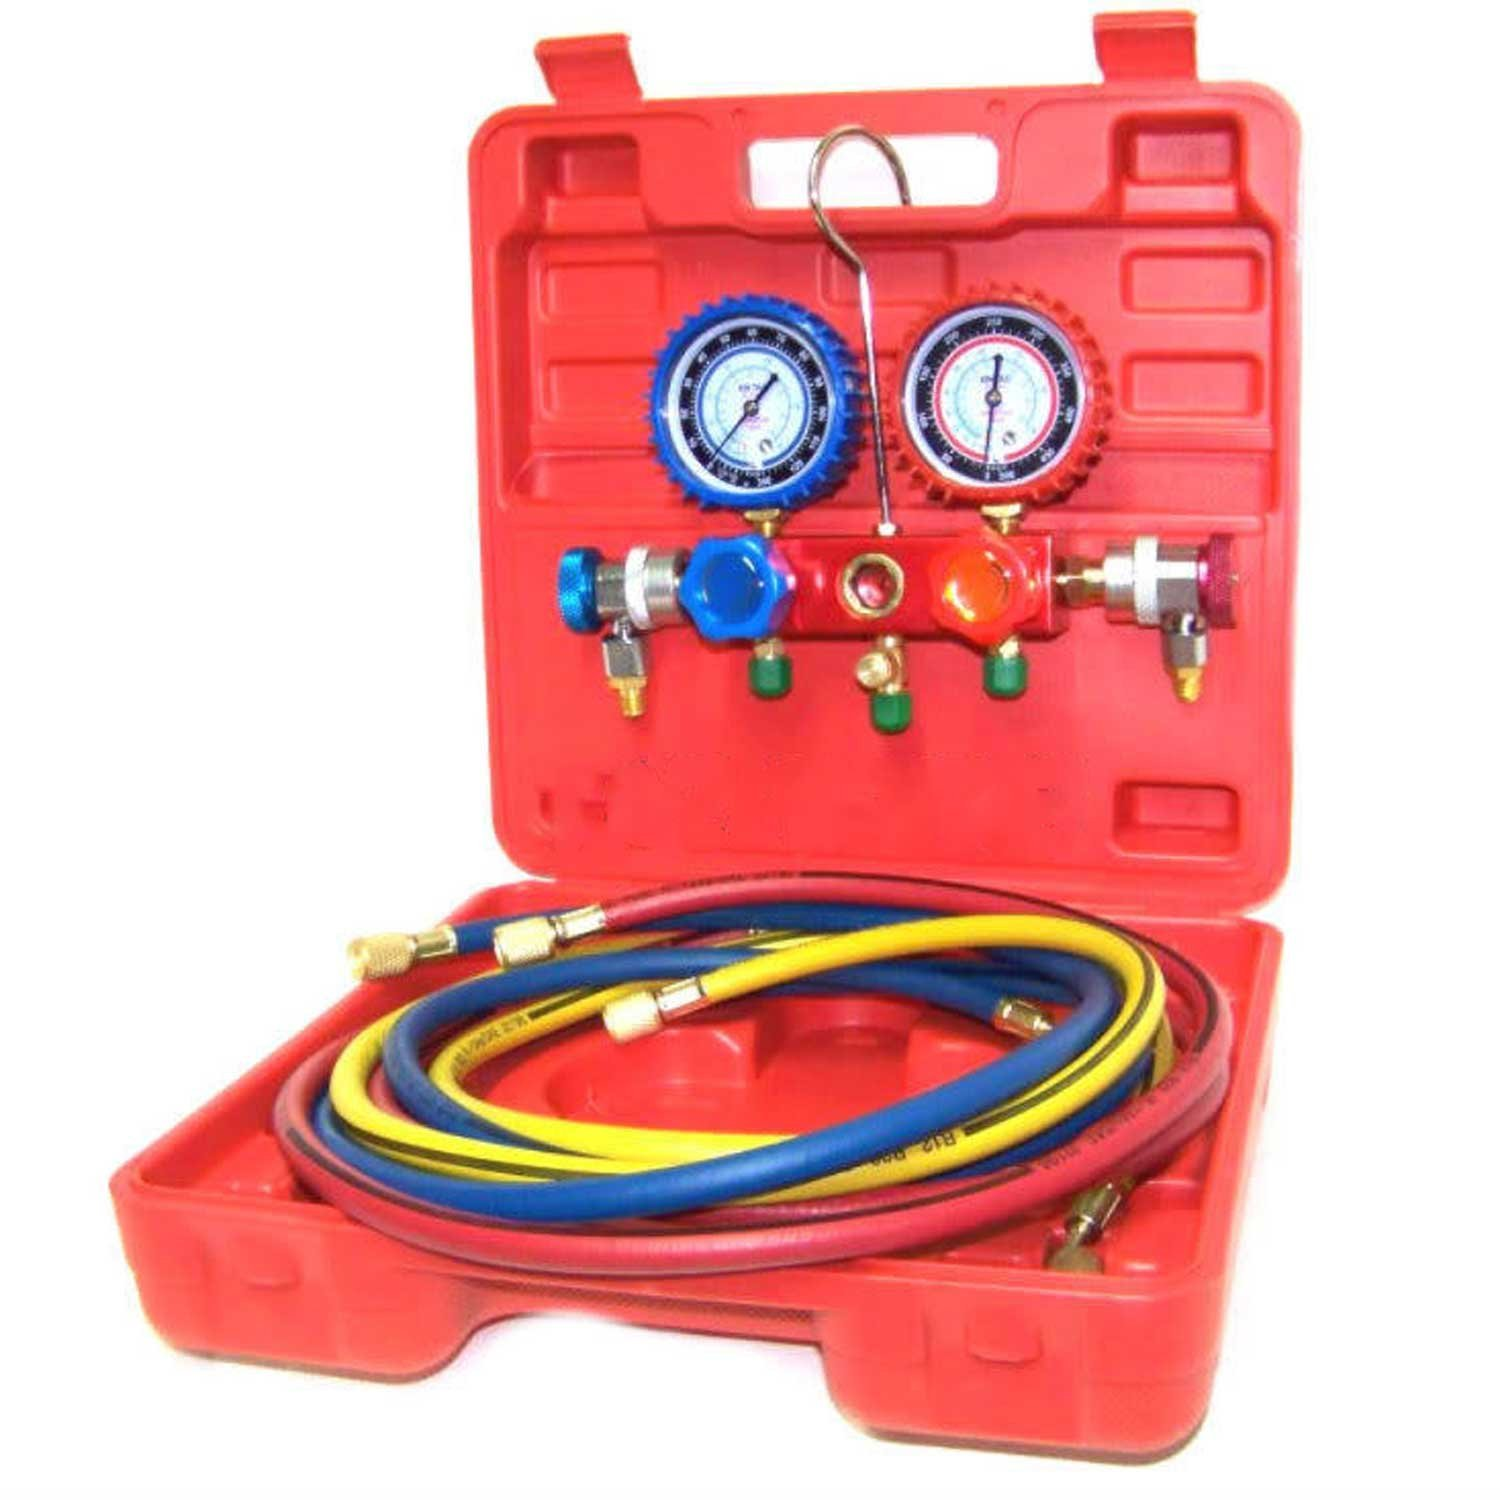 1//4 SAE HVAC DEDC Adjustable R134A Adapter Fittings Quick Coupler High Low AC Freon Manifold Gauge Hose Conversion kit